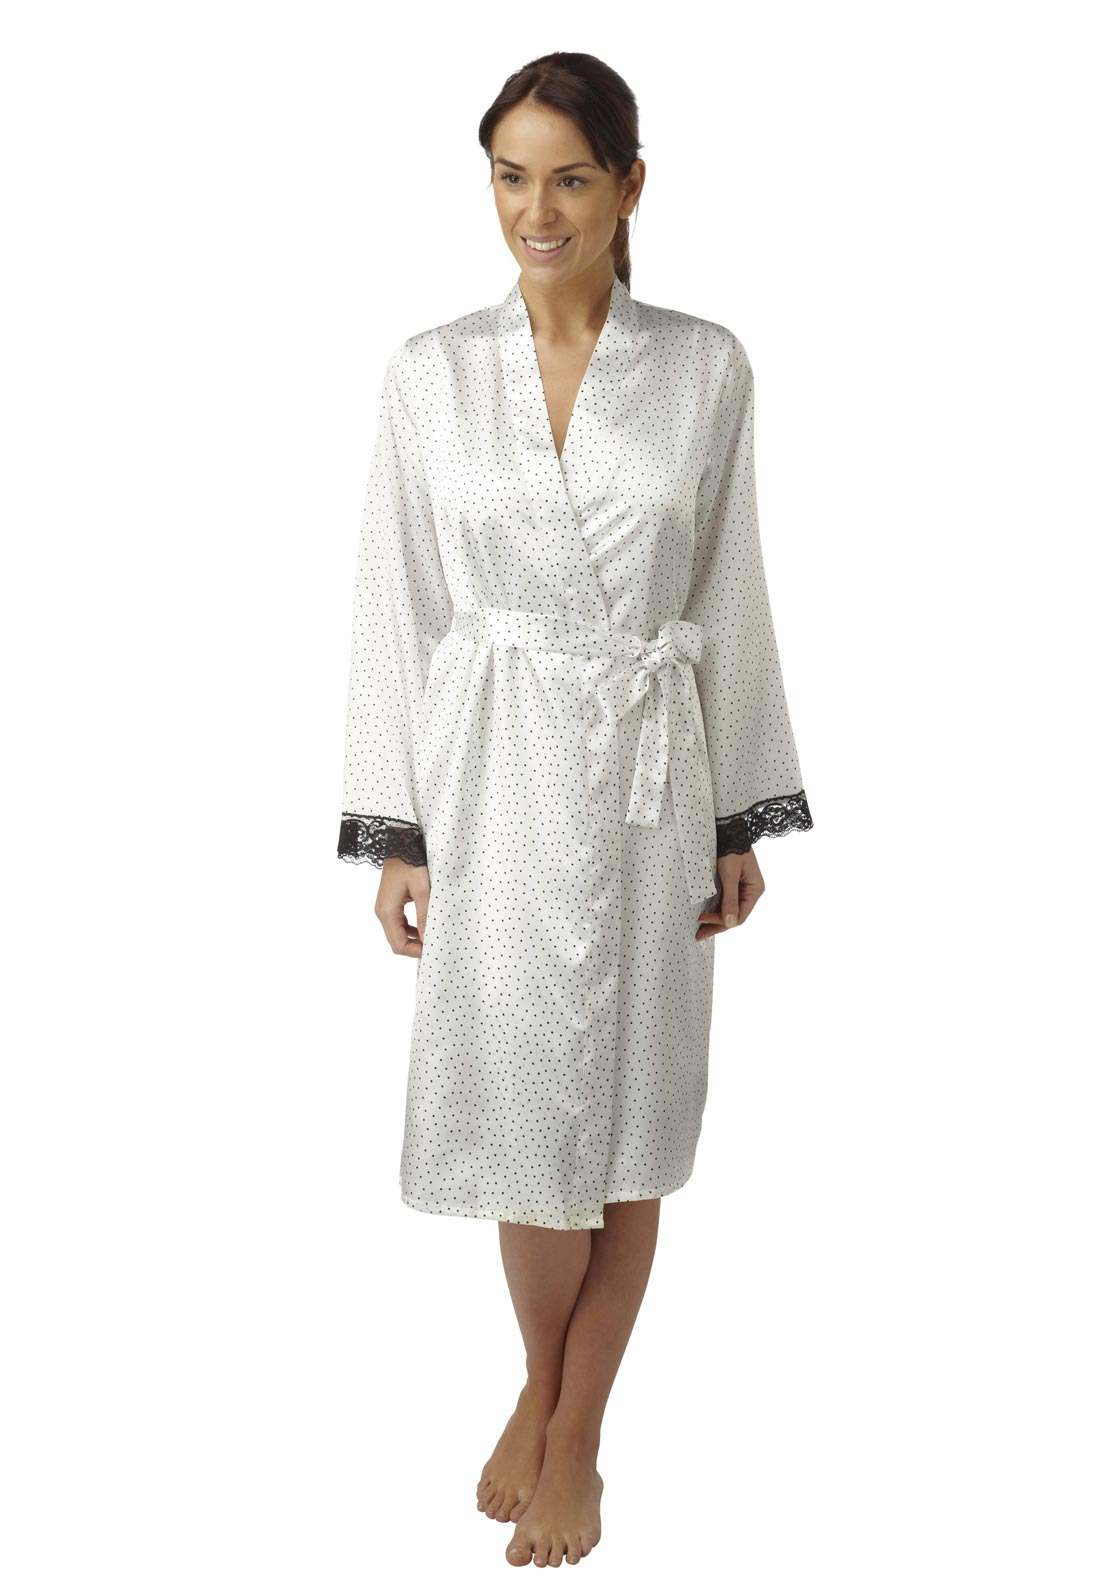 Indigo Sky Polka Dot Dressing Gown, White